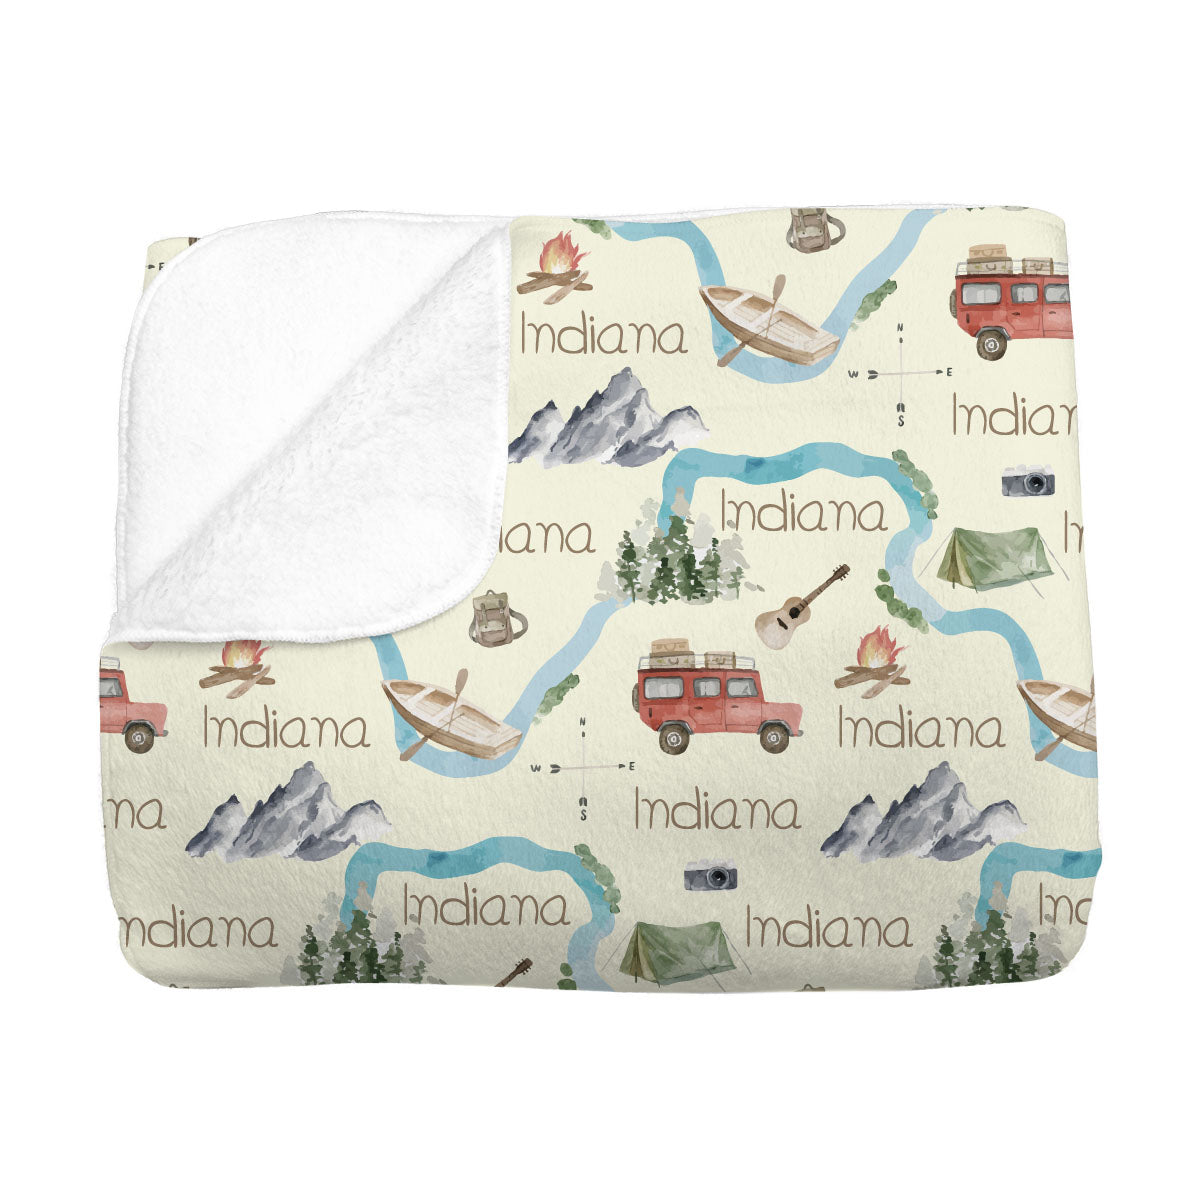 Indiana's Amazing Adventure | Big Kid Blanket